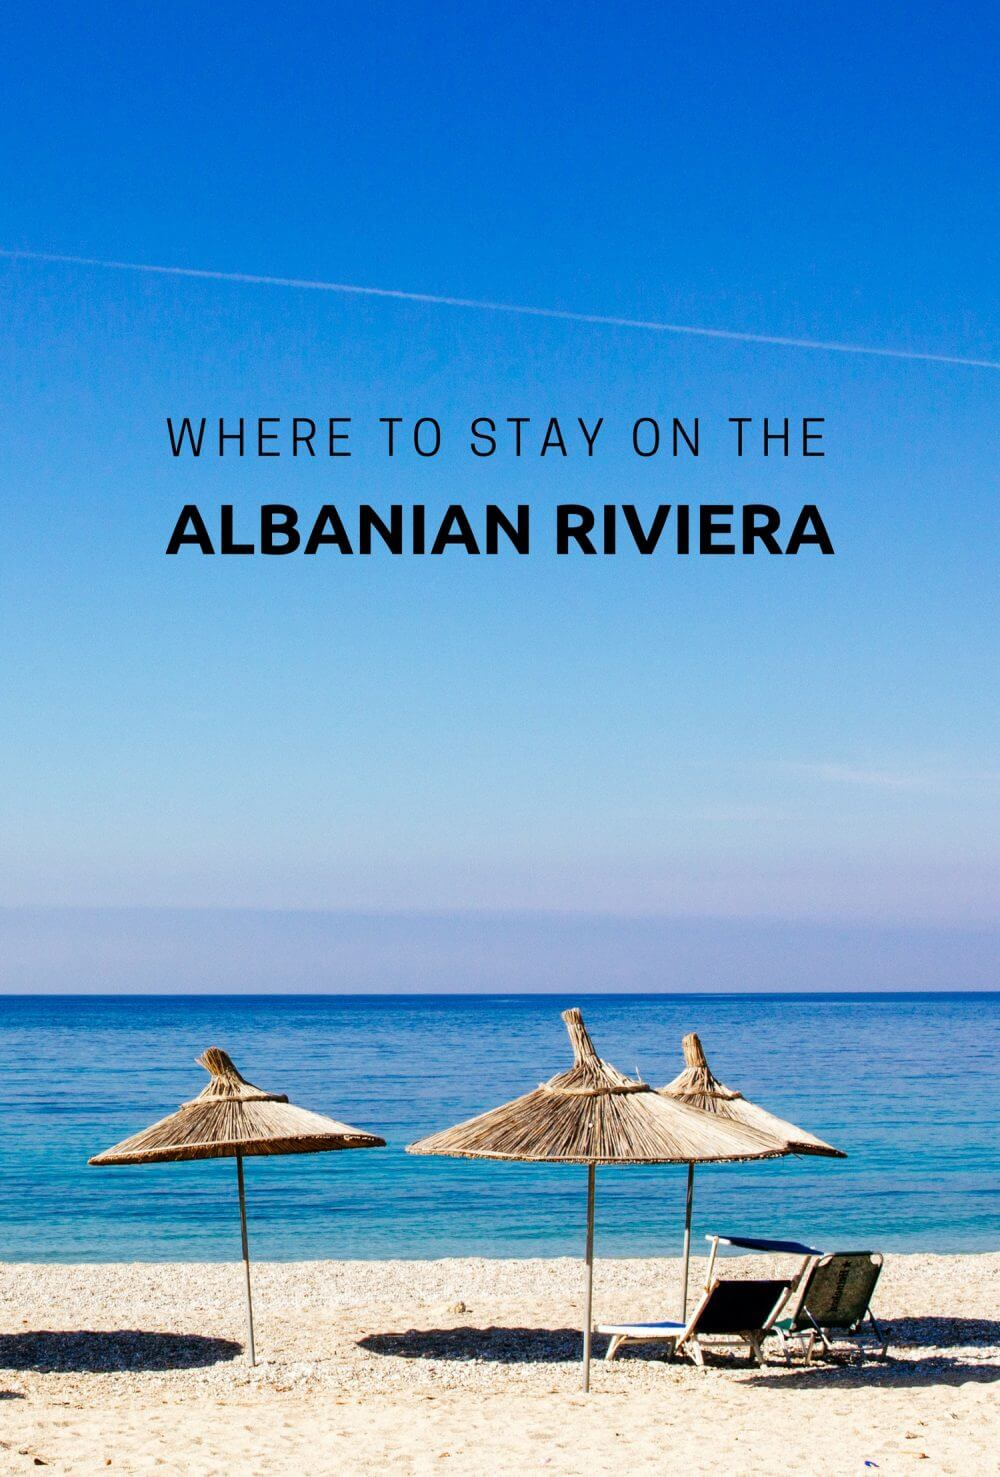 Beach Time: Where to Stay on the Albanian Riviera